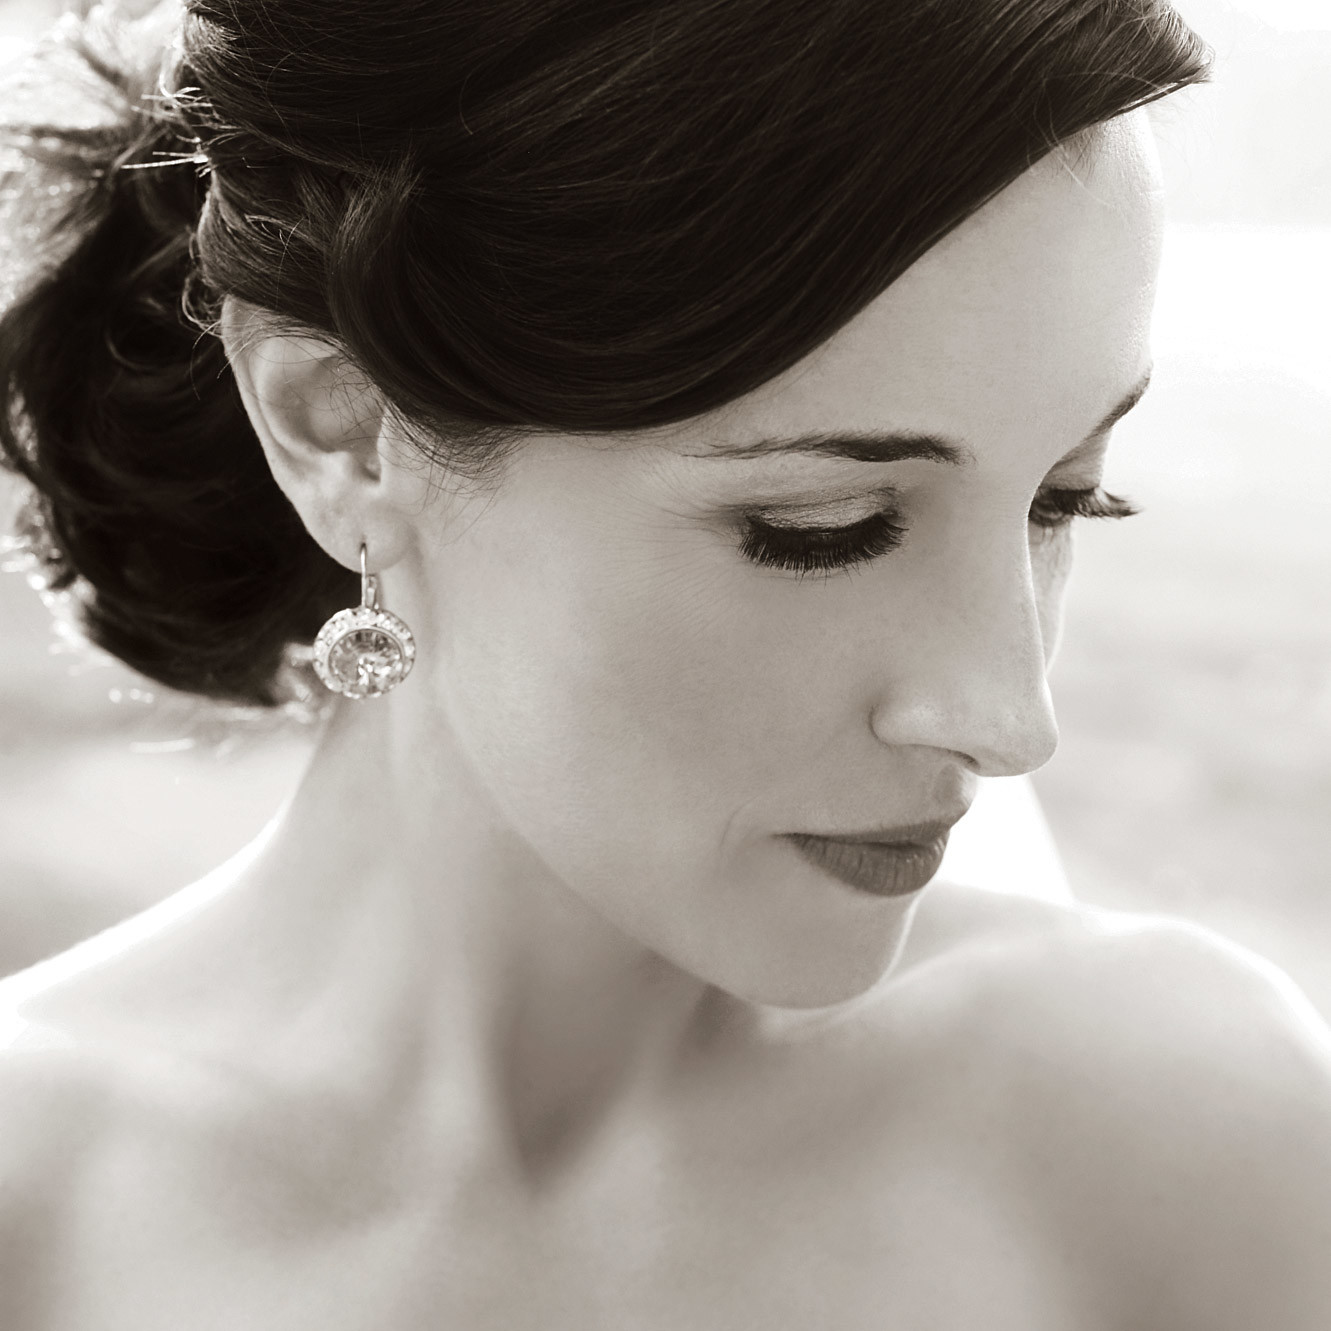 Professional Wedding Photography Tips: How To Pose For Wedding Pictures